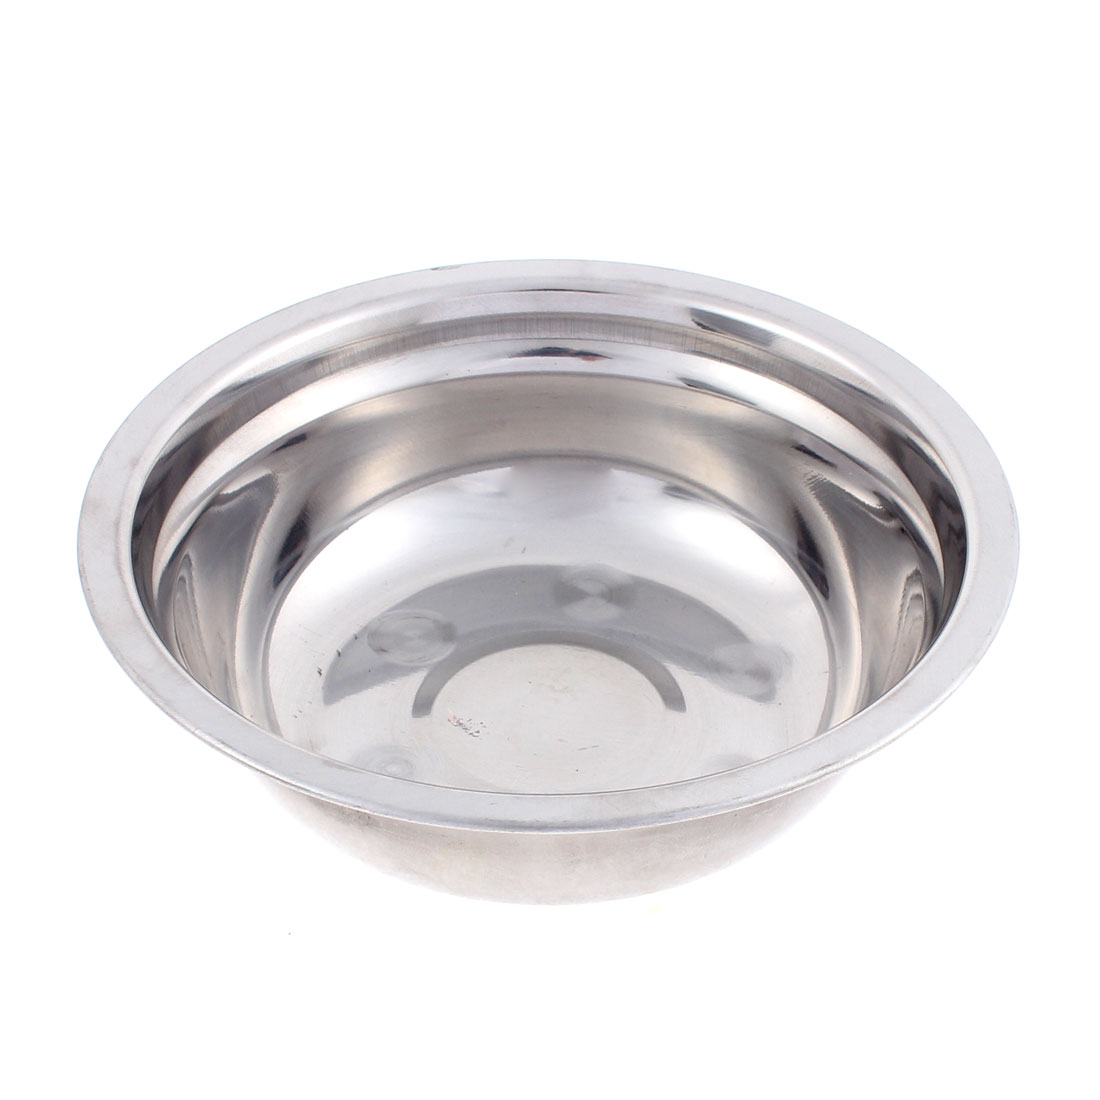 "Kitchen Stainless Steel Dinner Soup Food Bowl 6"" Dia"